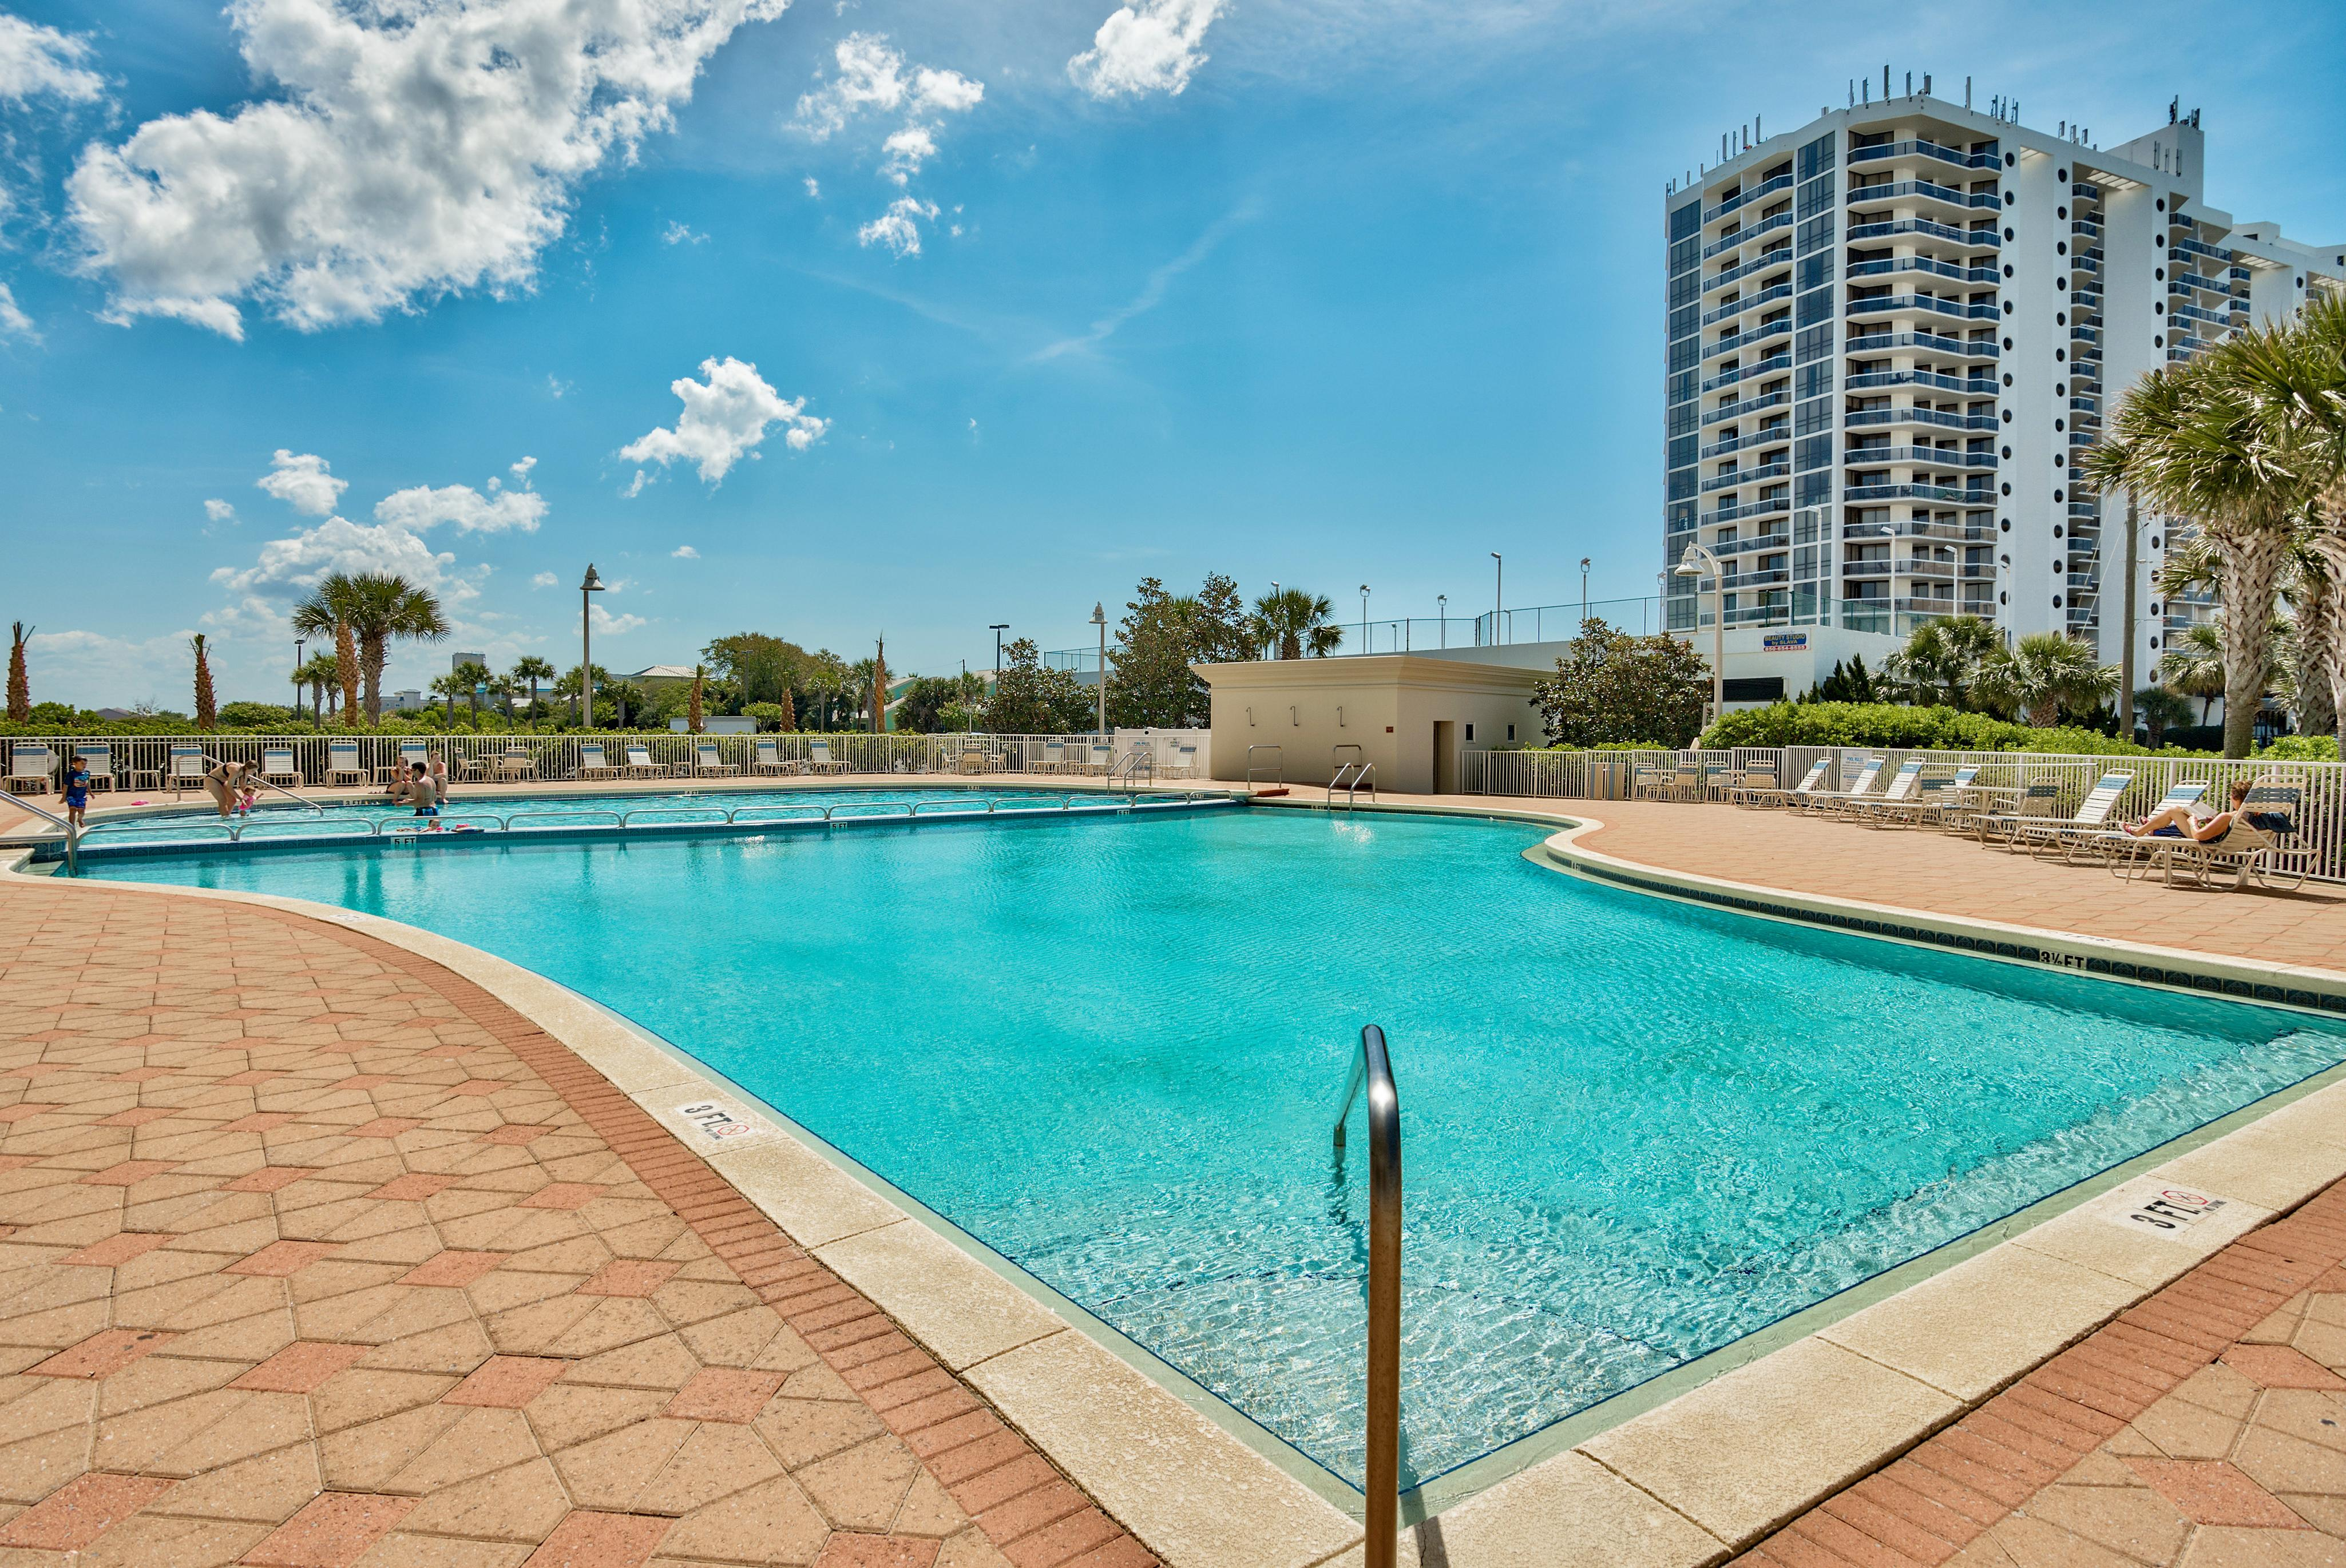 Your reservation at the Ariel Dunes II condo complex includes access to shared amenities including a pool, hot tub, gym, and grilling area.